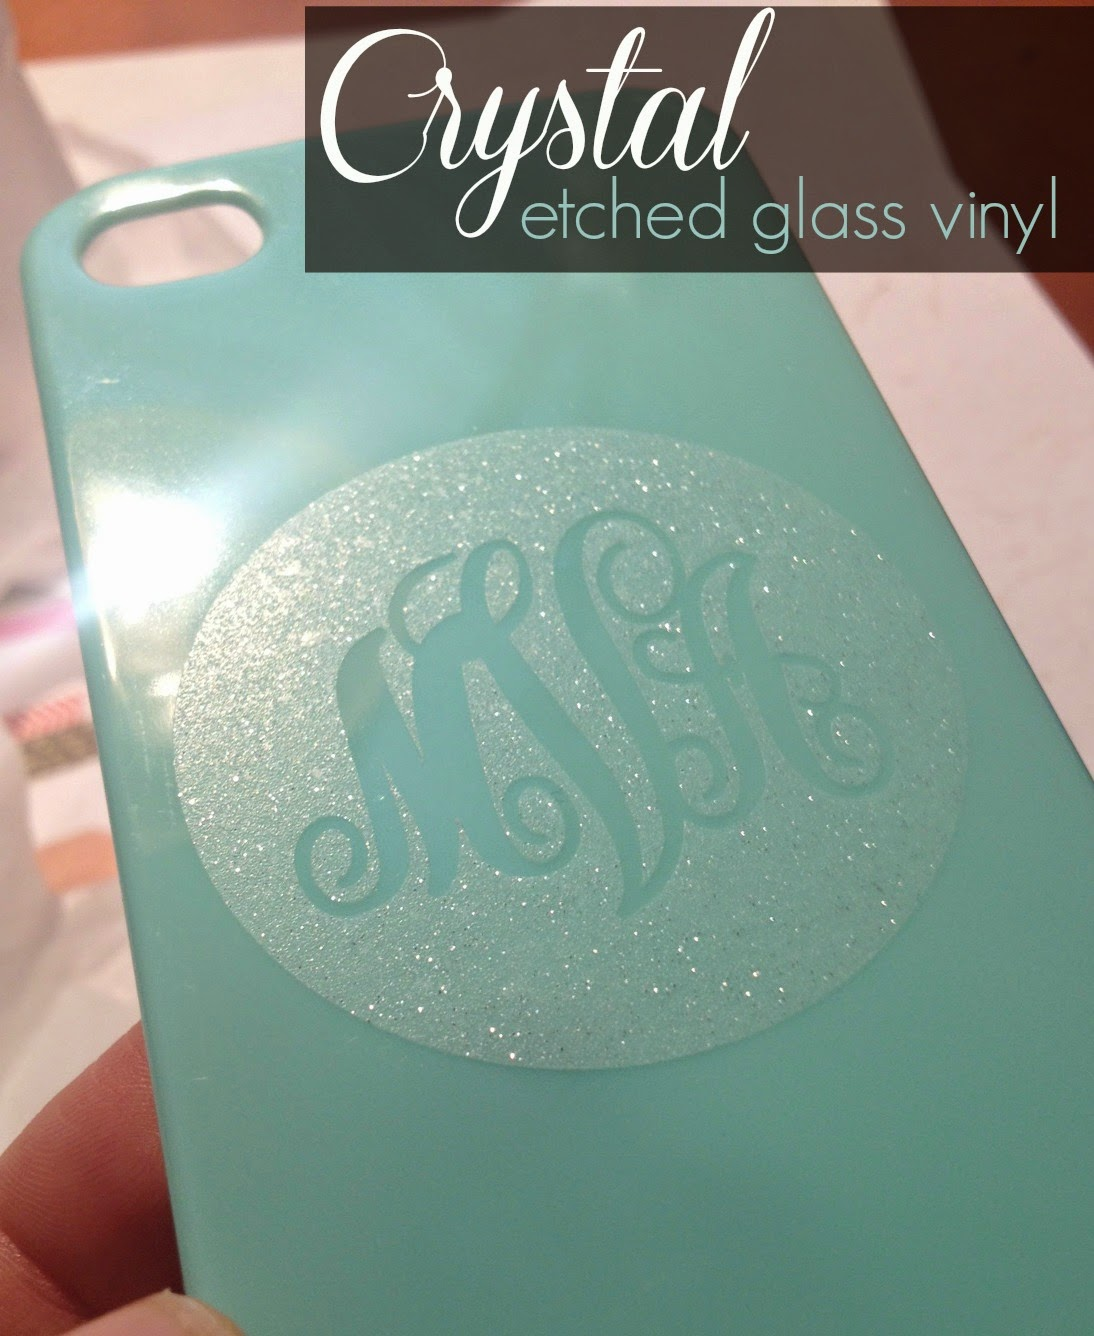 Crystal, etched glass, vinyl, monogram